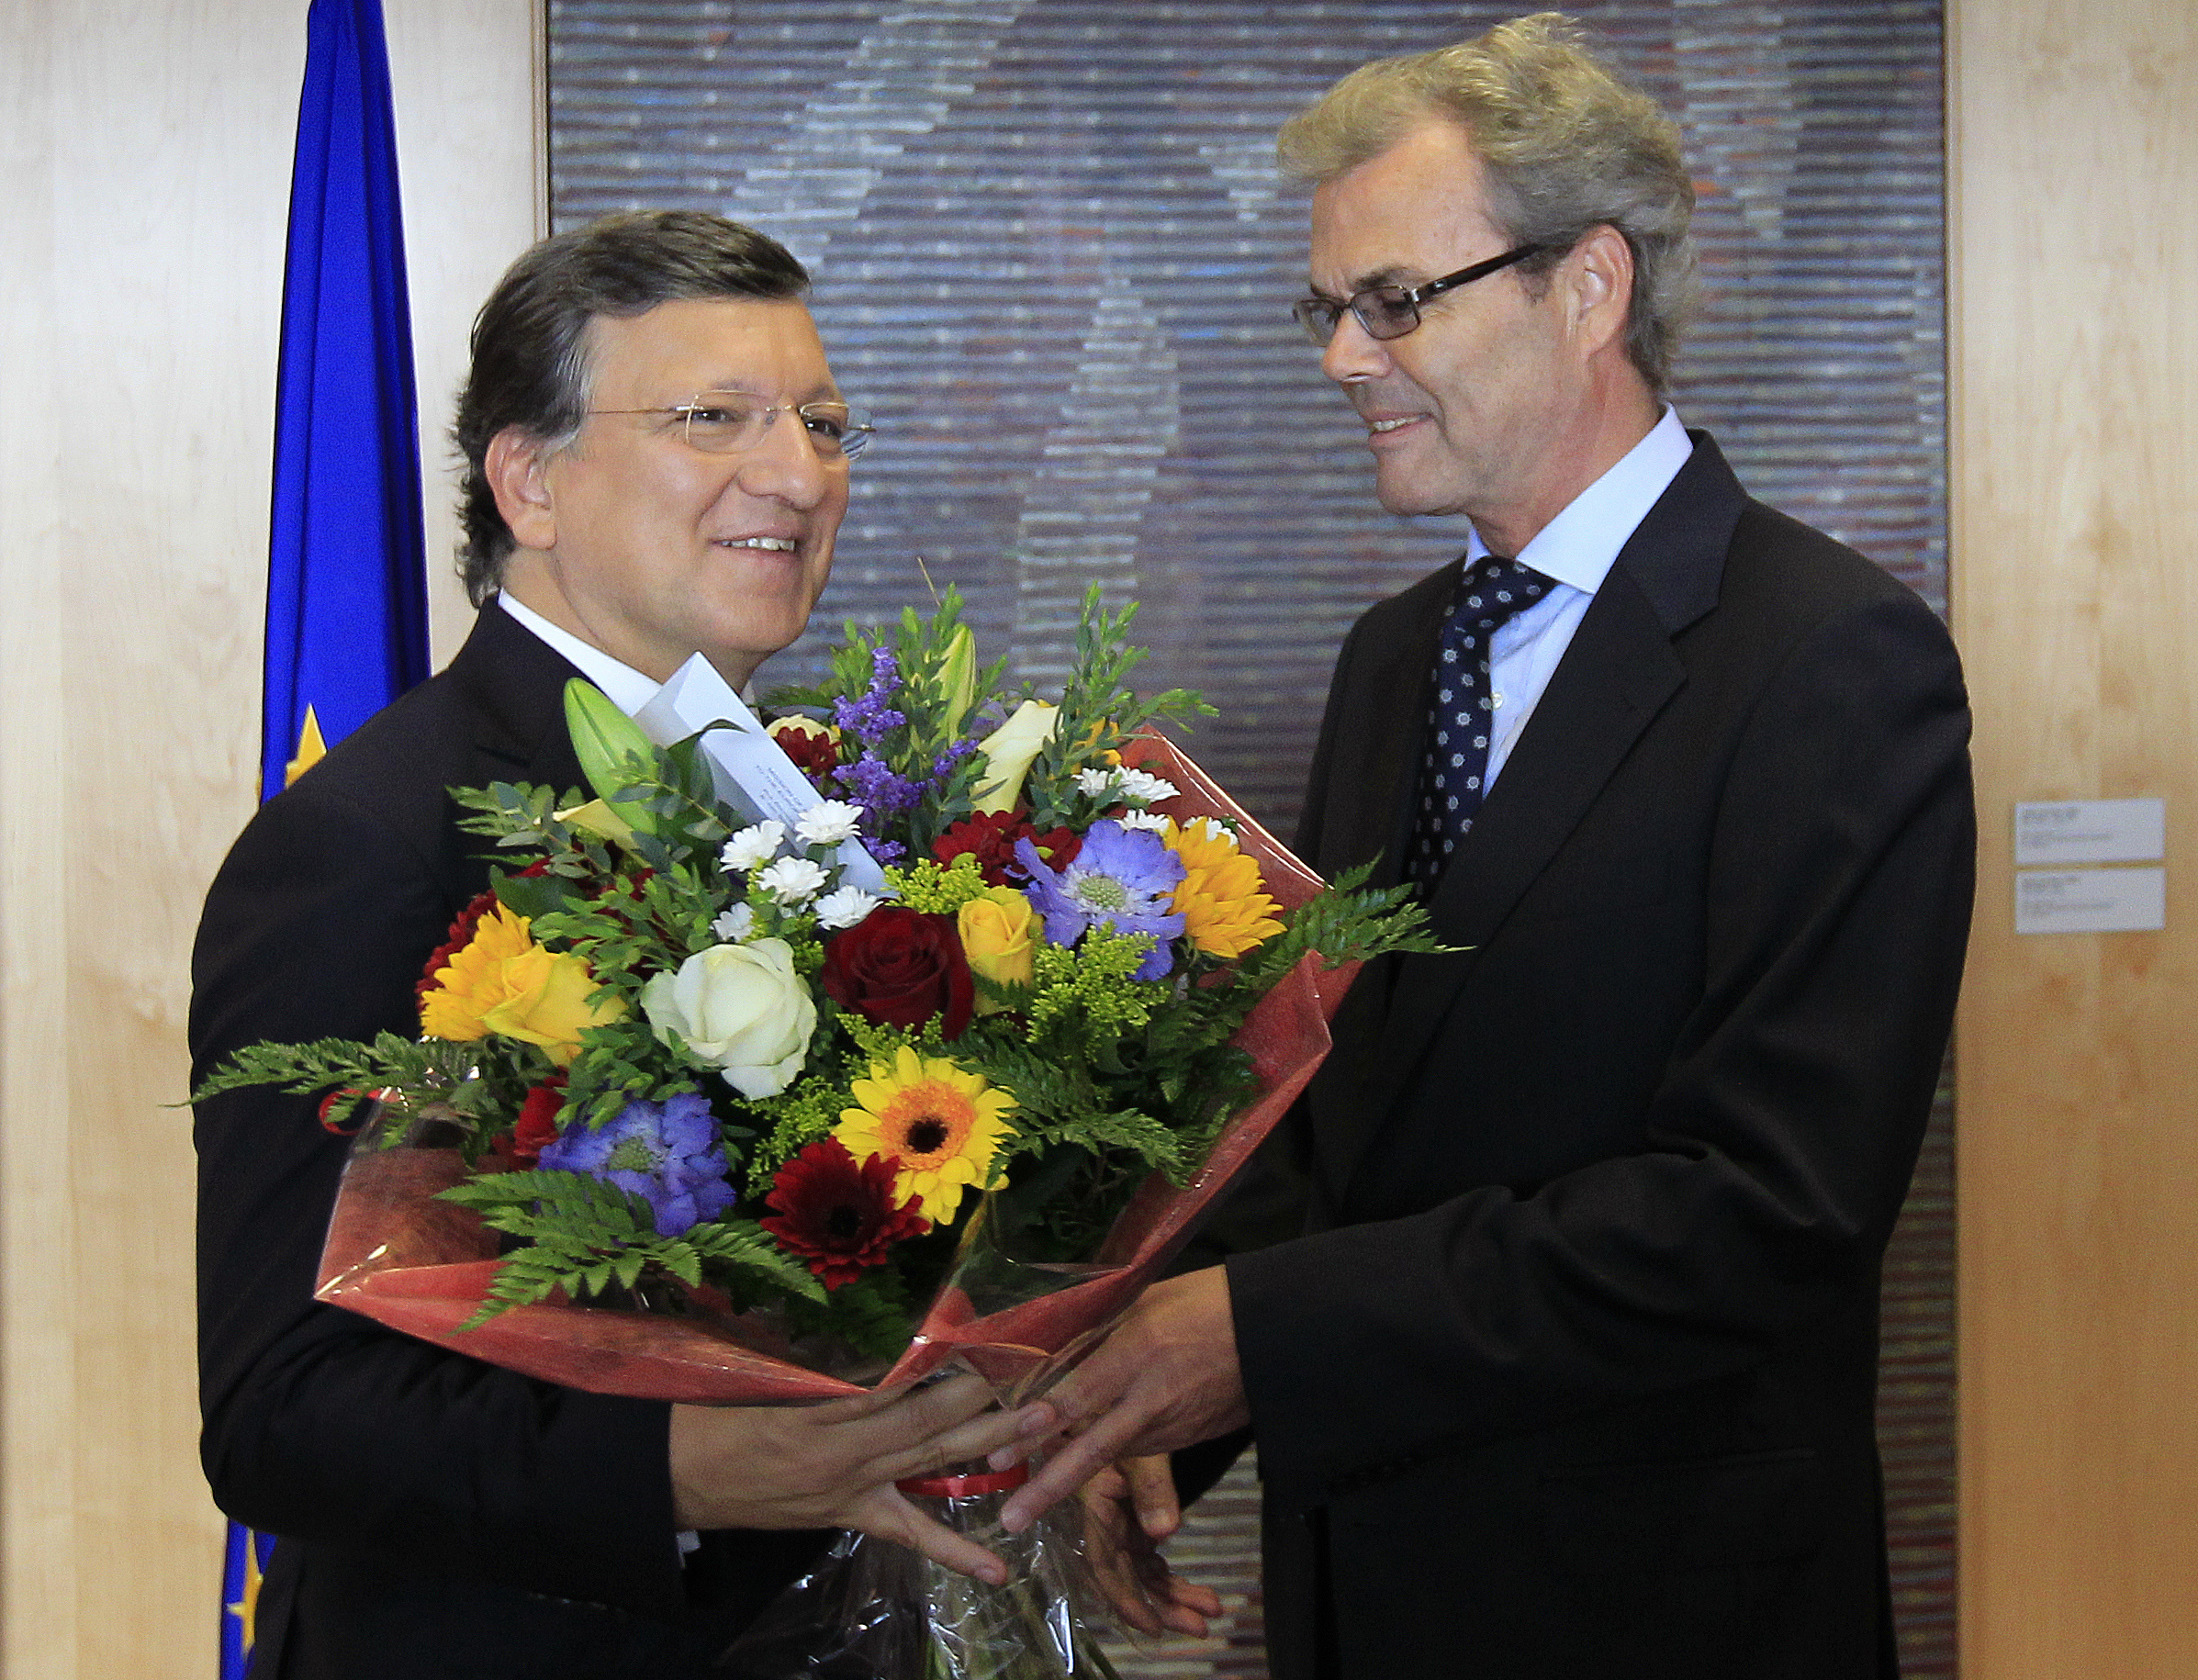 European Commission President Jose Manuel Barroso (left) receives flowers from Atle Leikvoll, Norway's Ambassador to the European Union.